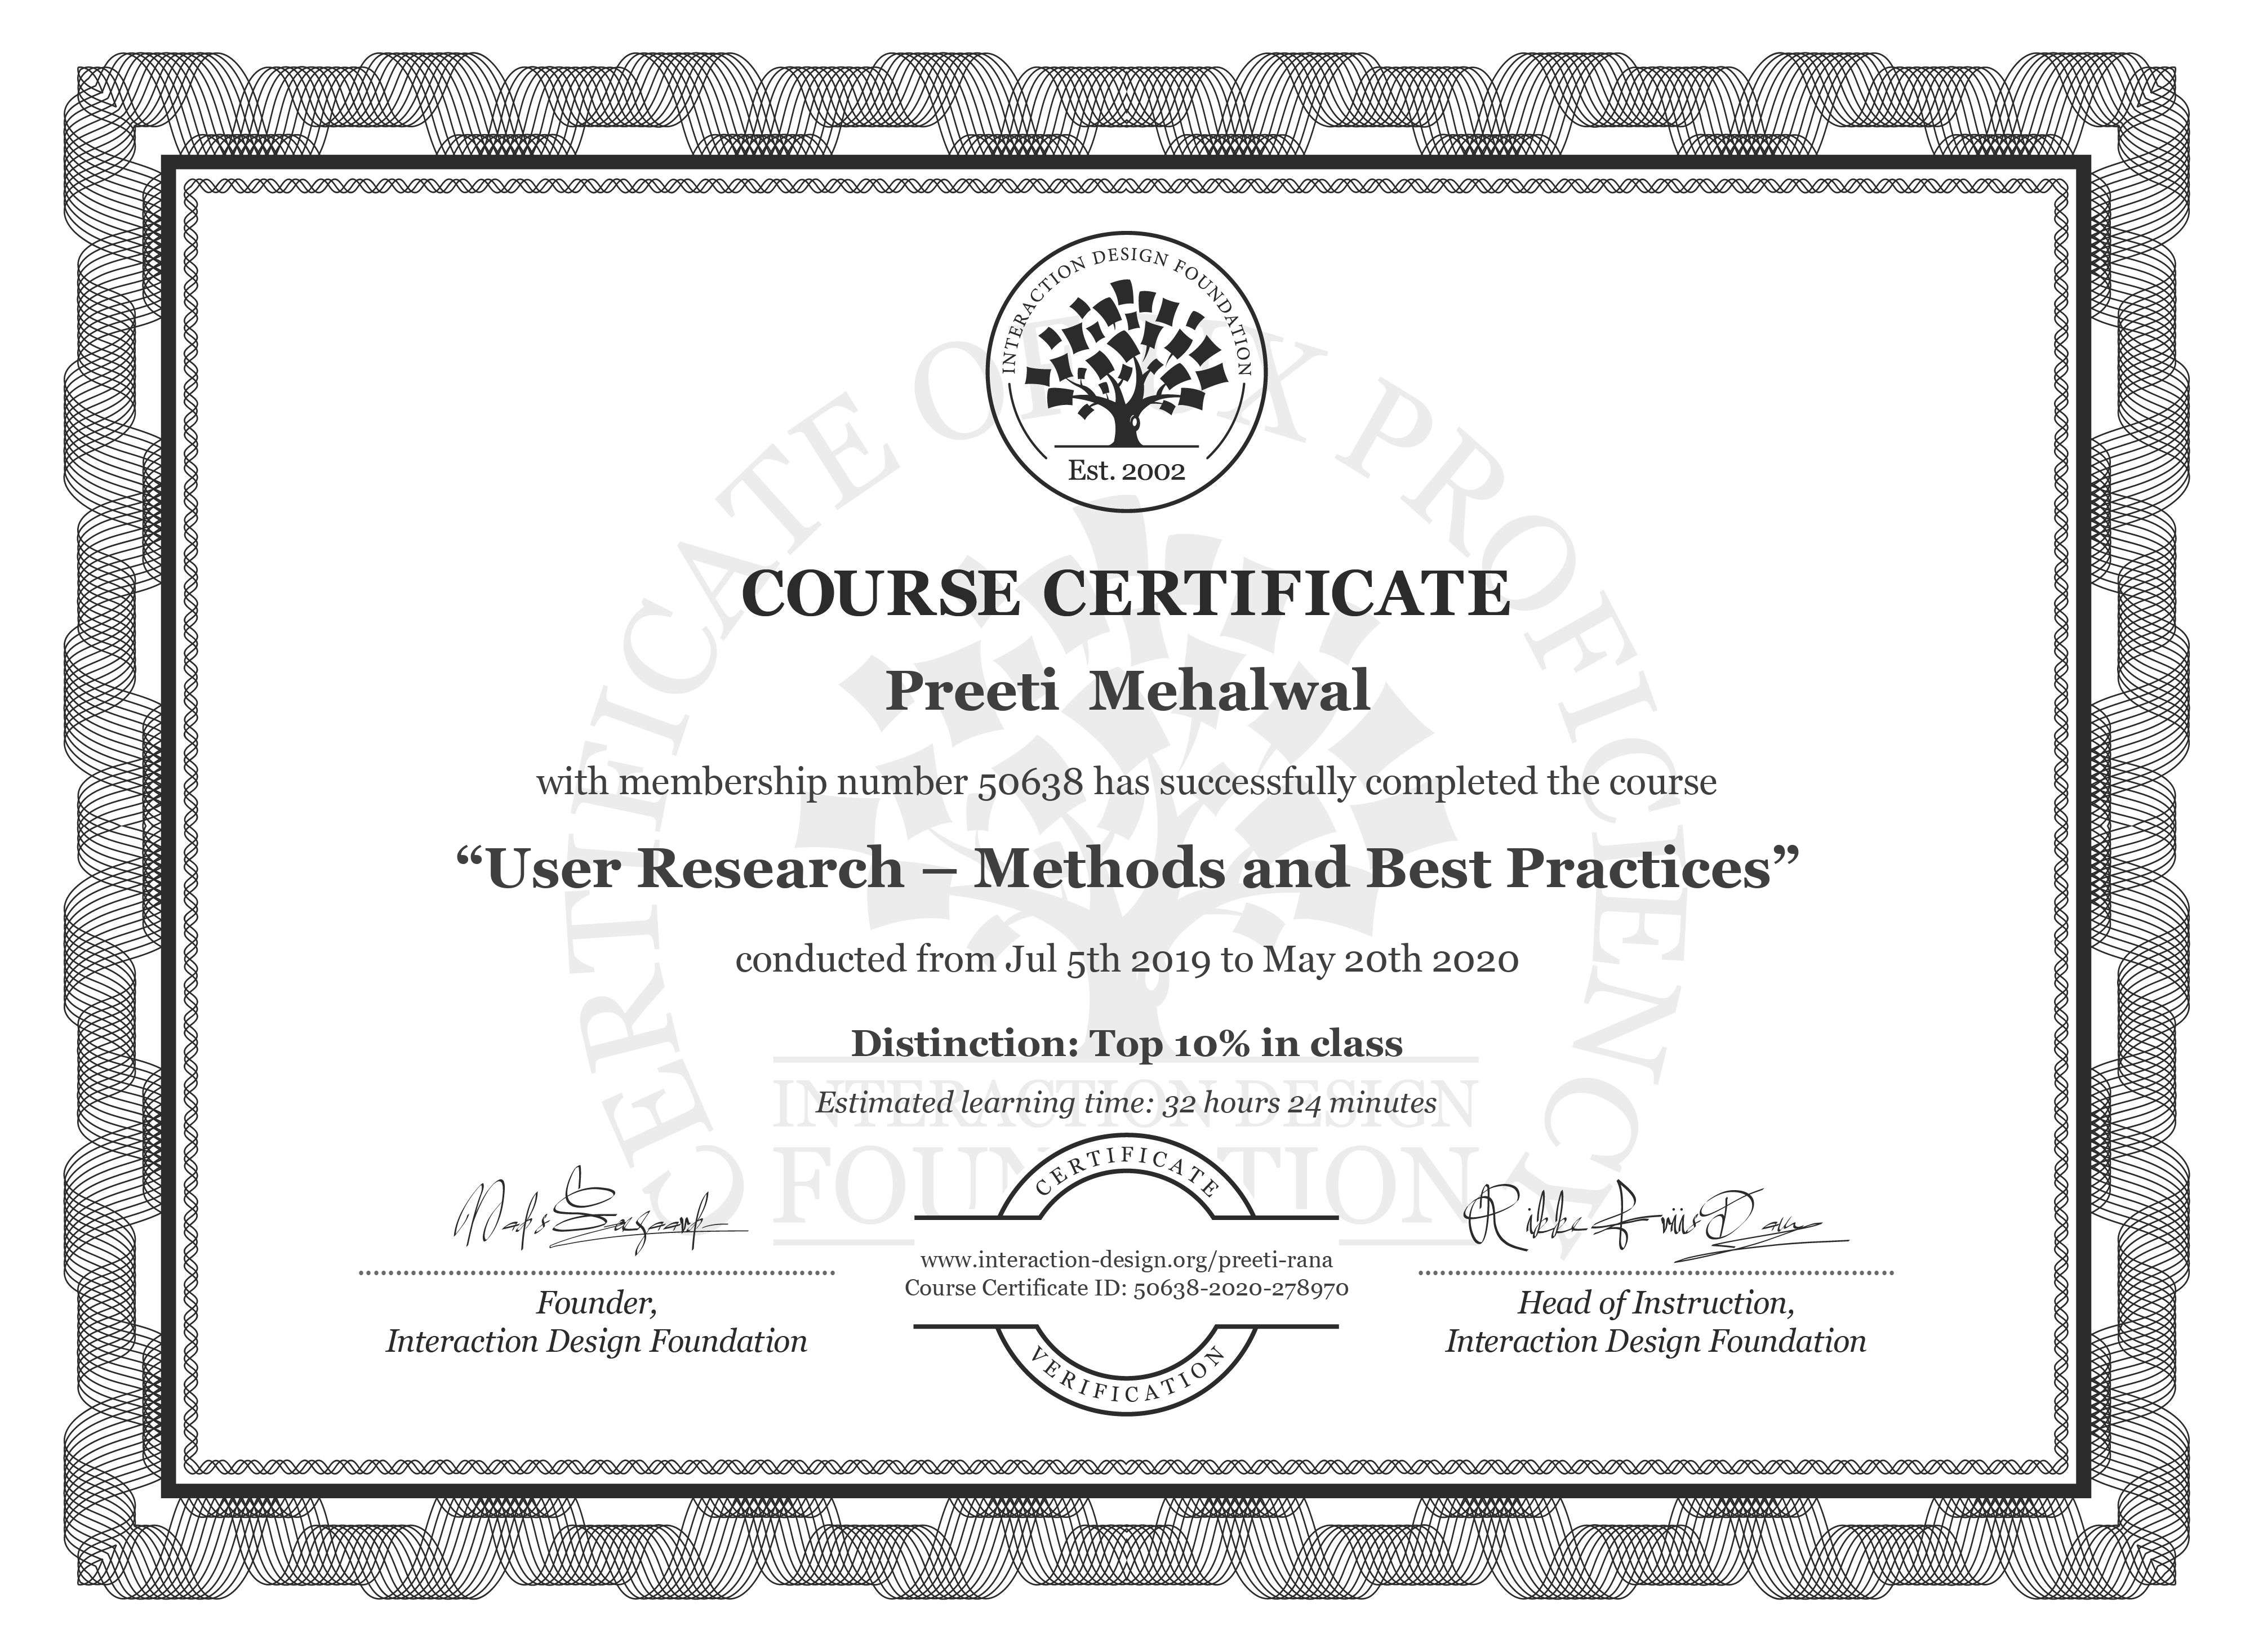 Preeti  Mehalwal's Course Certificate: User Research – Methods and Best Practices